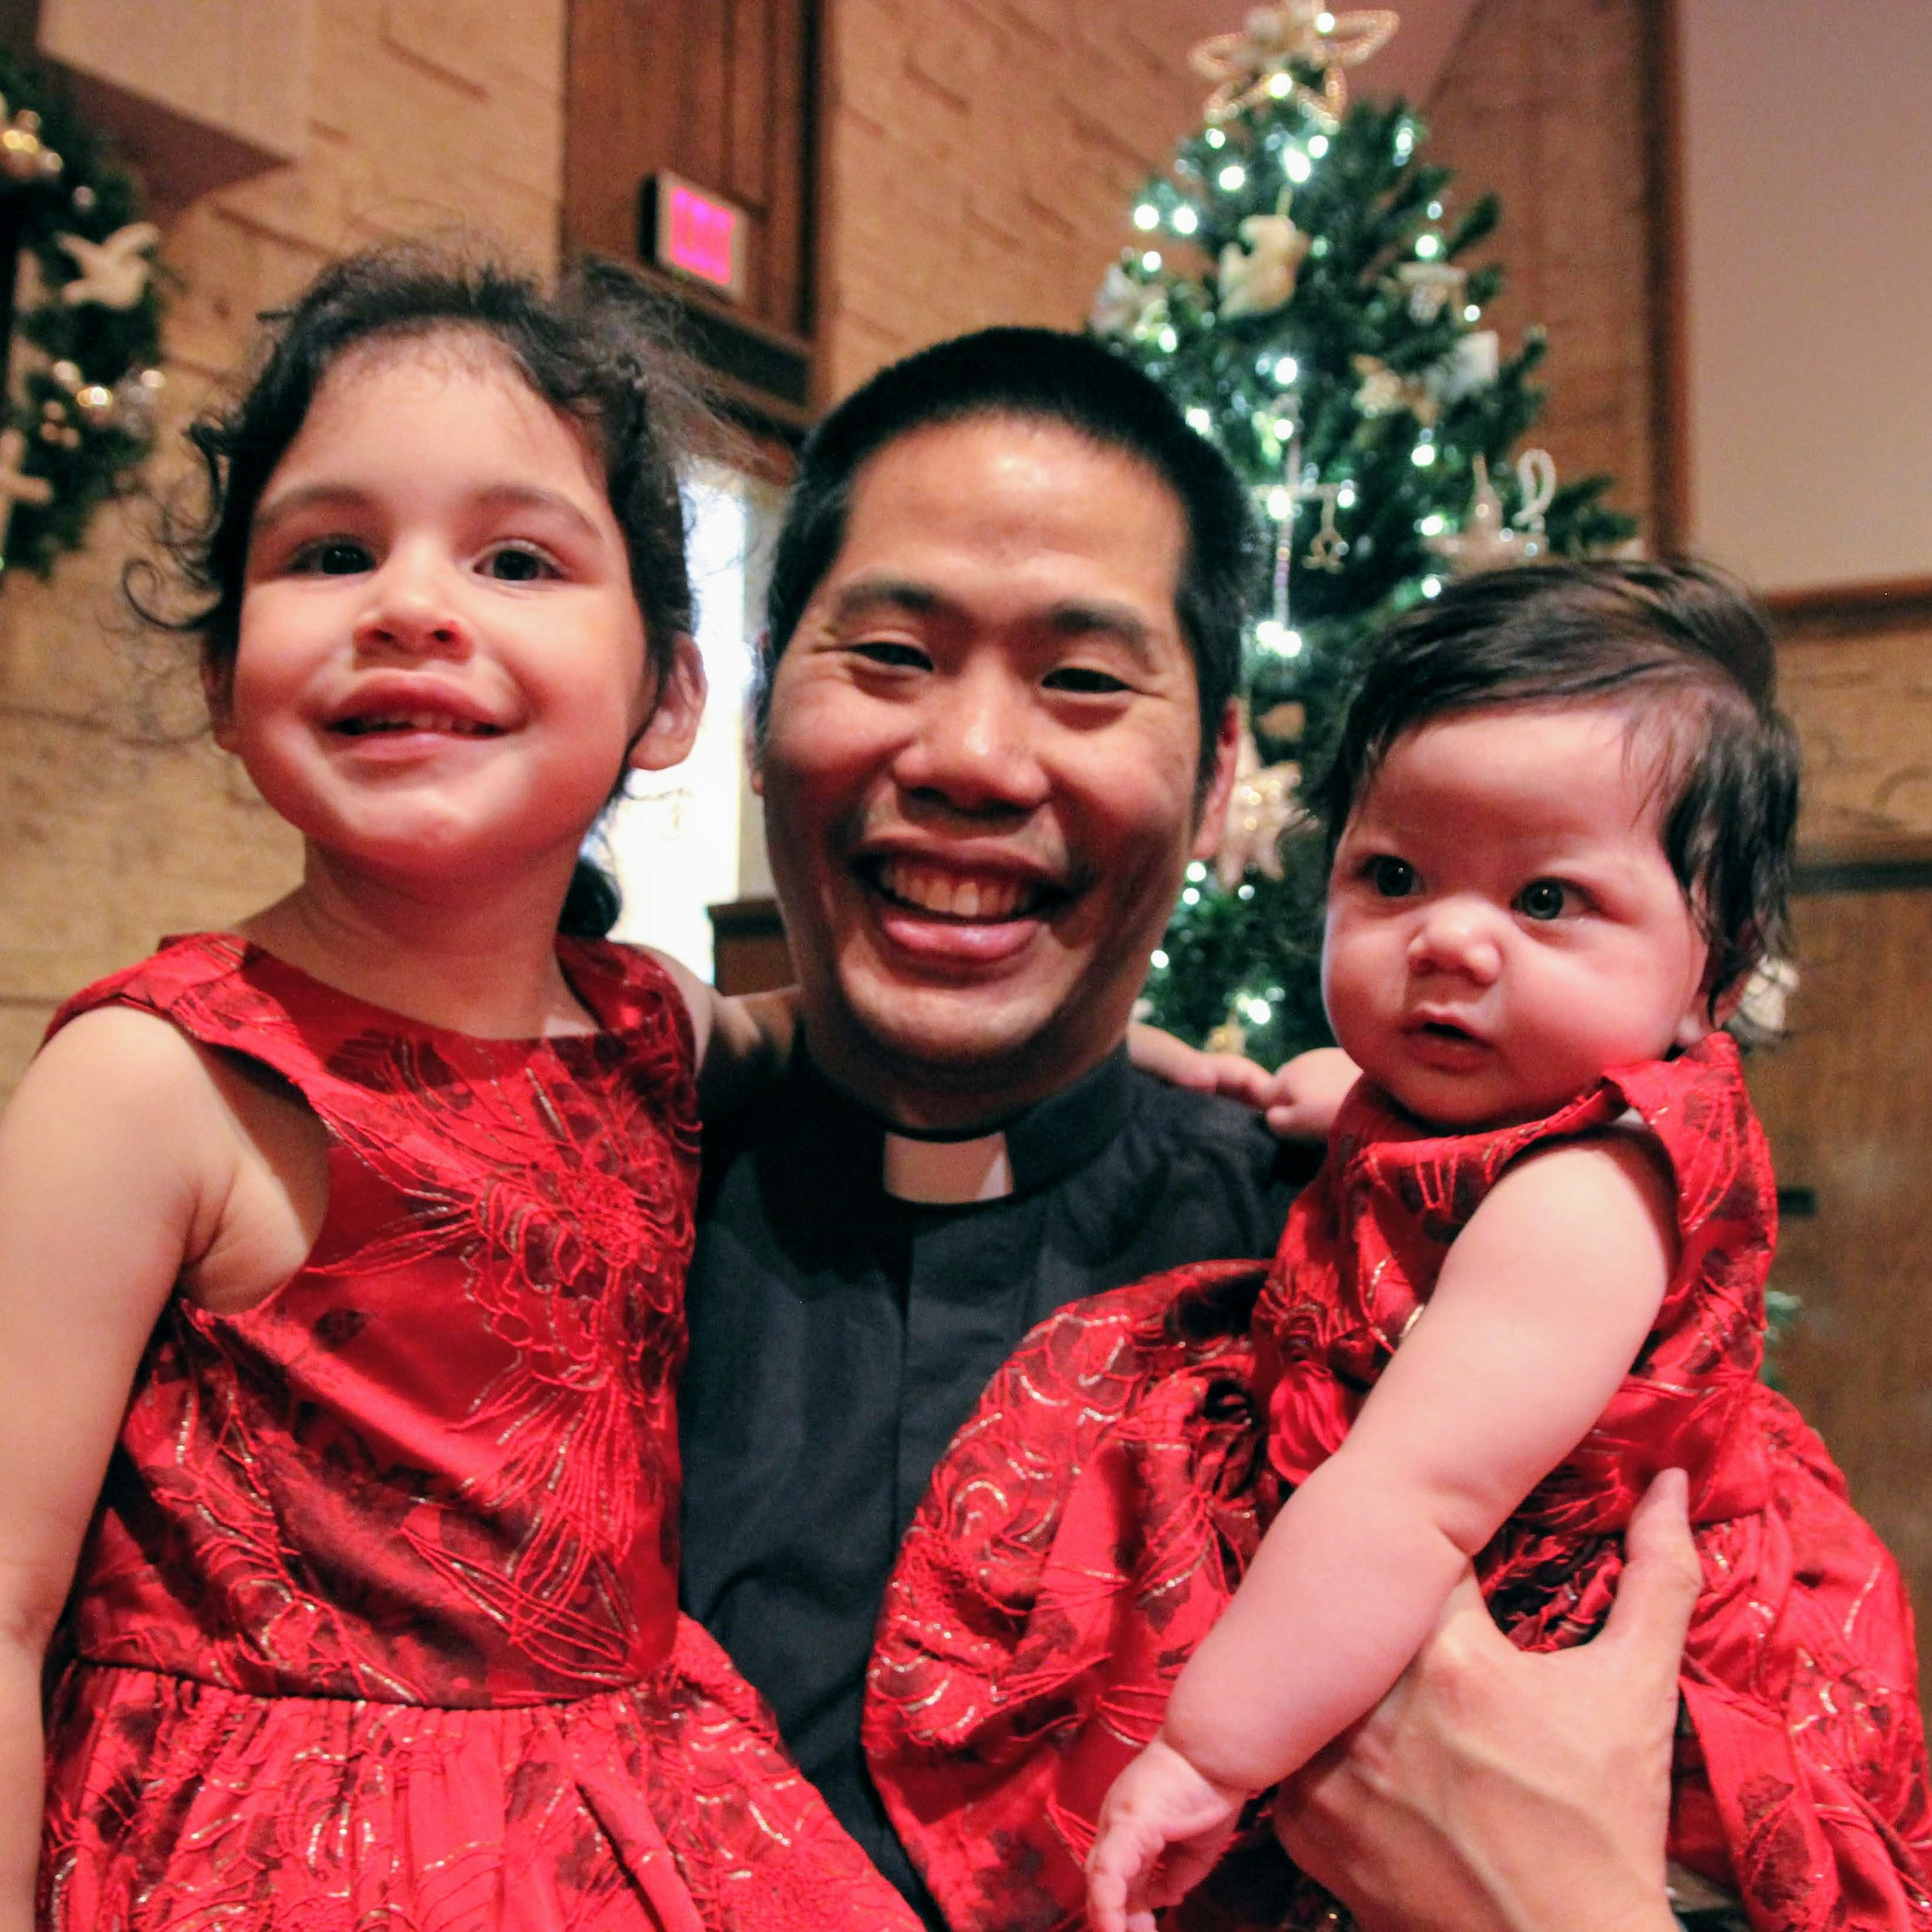 Rev. danny yang - grew up on the west side of Houston (Alief). He's worn a few different hats in life: semiconductor engineer, youth director, campus minister, pastor, husband, and dad. He loves learning and teaching the Bible so that all might discover the unique ways God has created each of us to serve in the world.